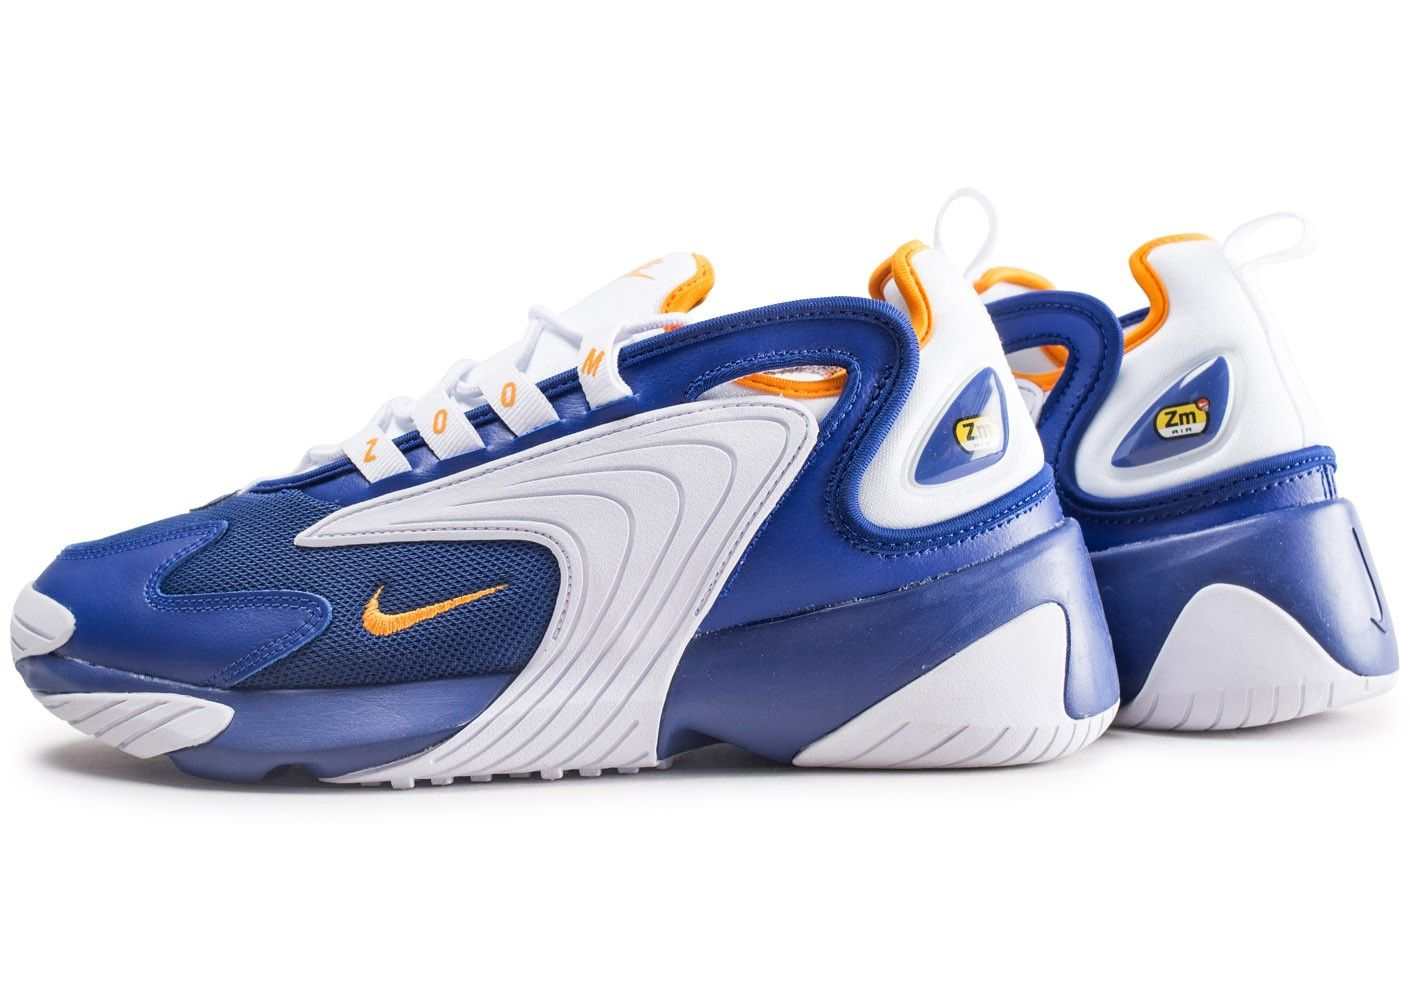 Les baskets Nike Zoom 2K bleu et orange. Disponible sur ...